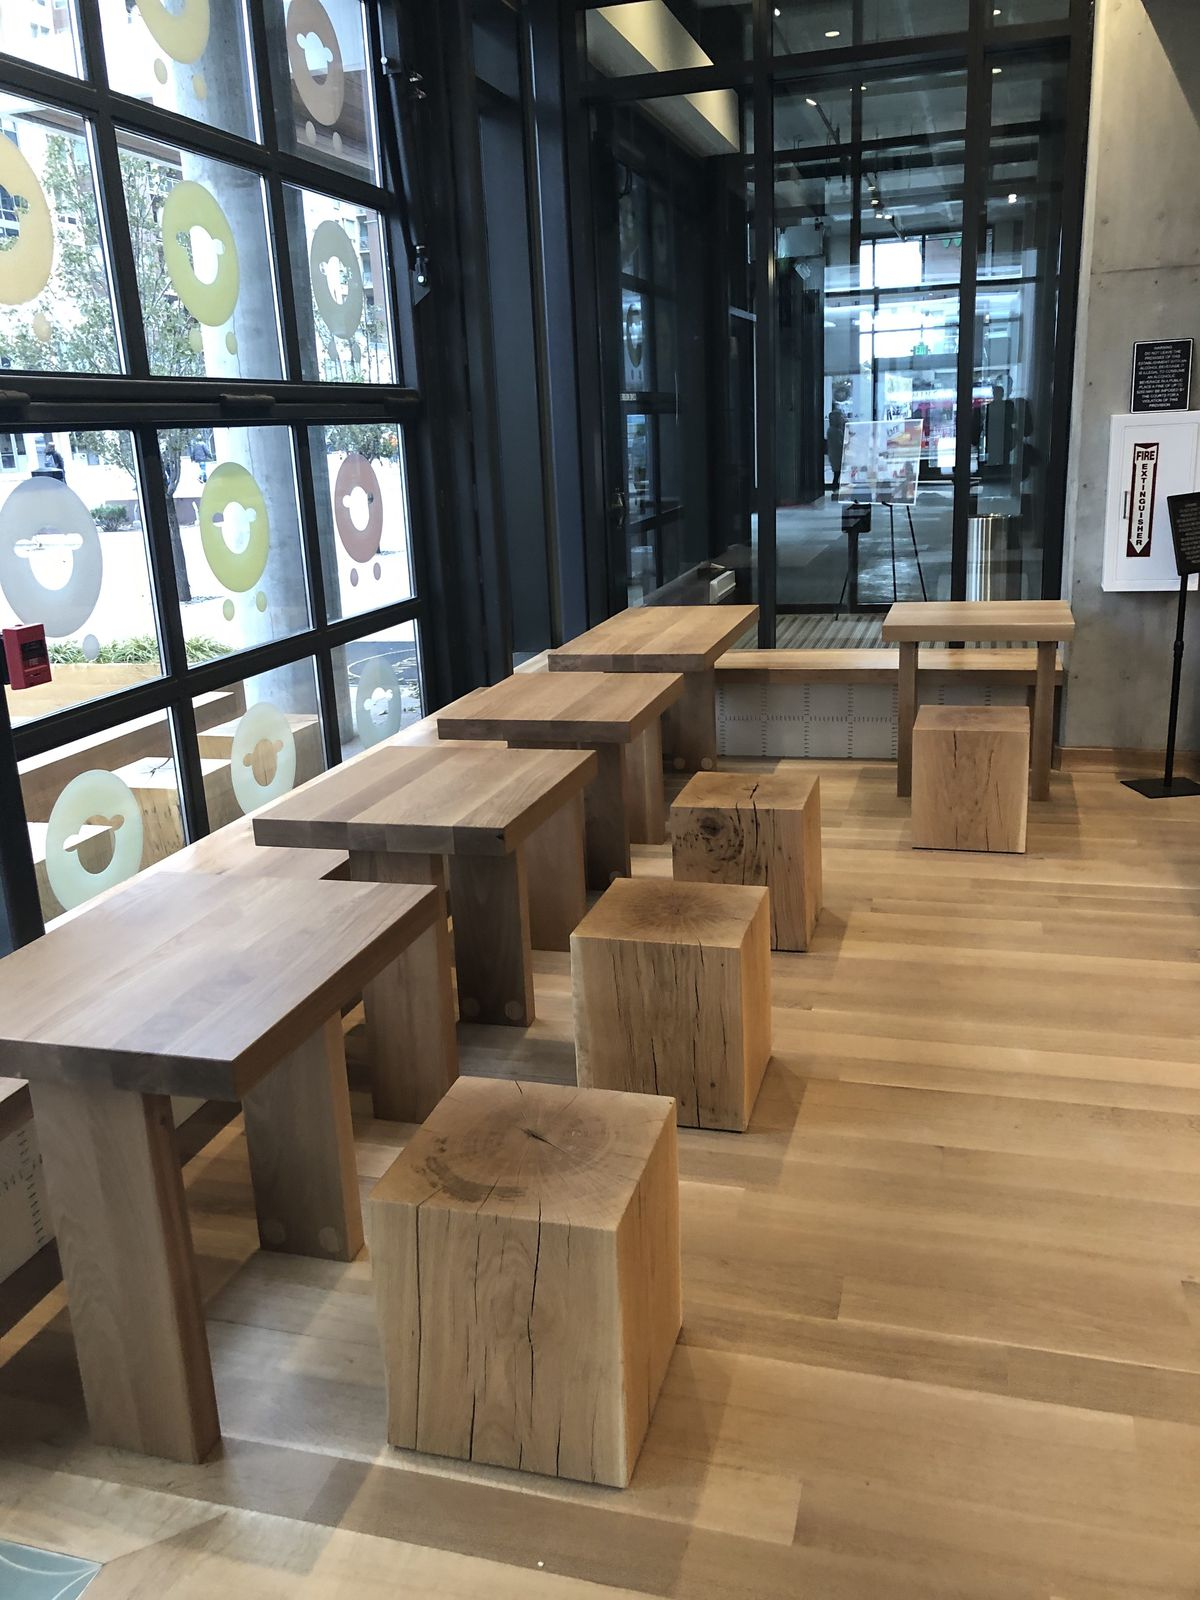 A photo of wooden tables and cubes for seating facing a large window inside Kaffe Landskap at Union Station